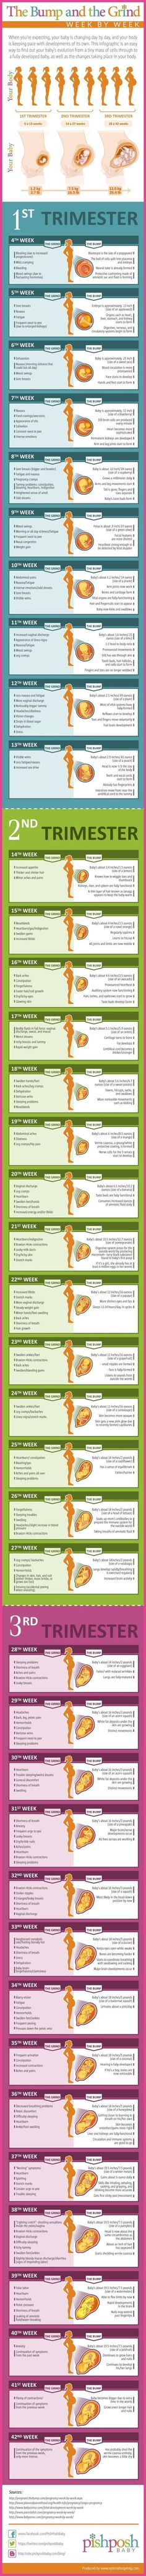 [Pregnancy First] Early Signs of Pregnancy - The Top 10 Signs That You Might Be Pregnant >>> Be sure to check out this helpful article. #pregnant #pregnancyat8weeks,